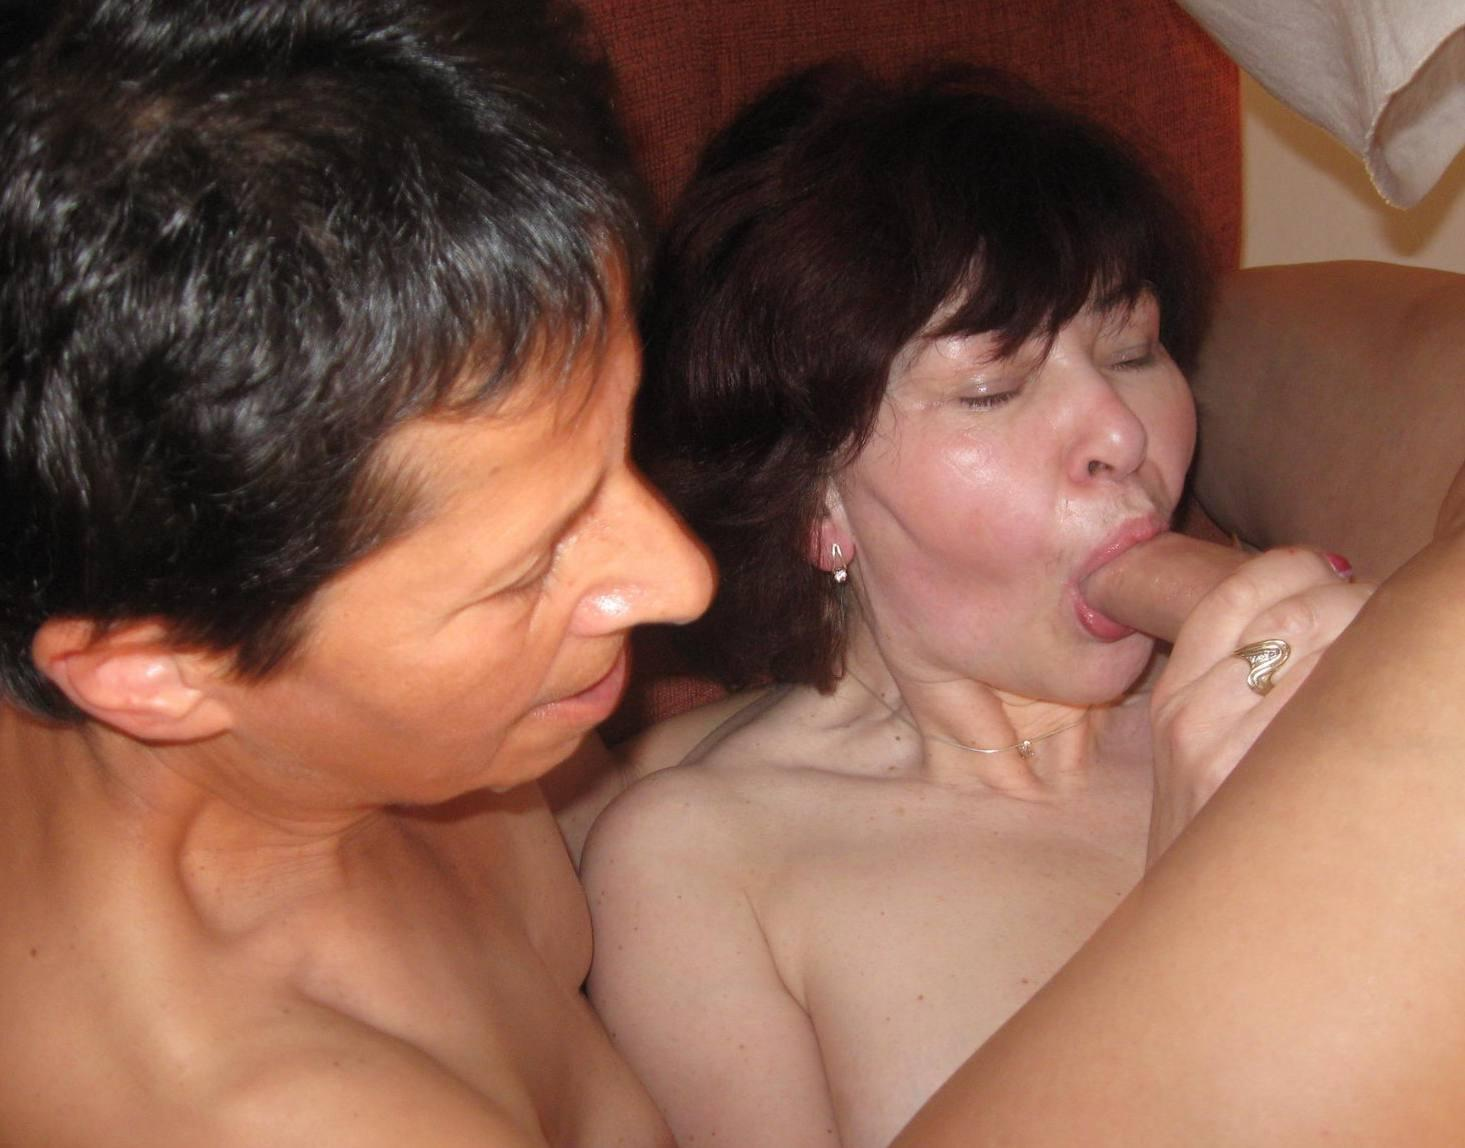 Almost same. sex videos couples free swingers join